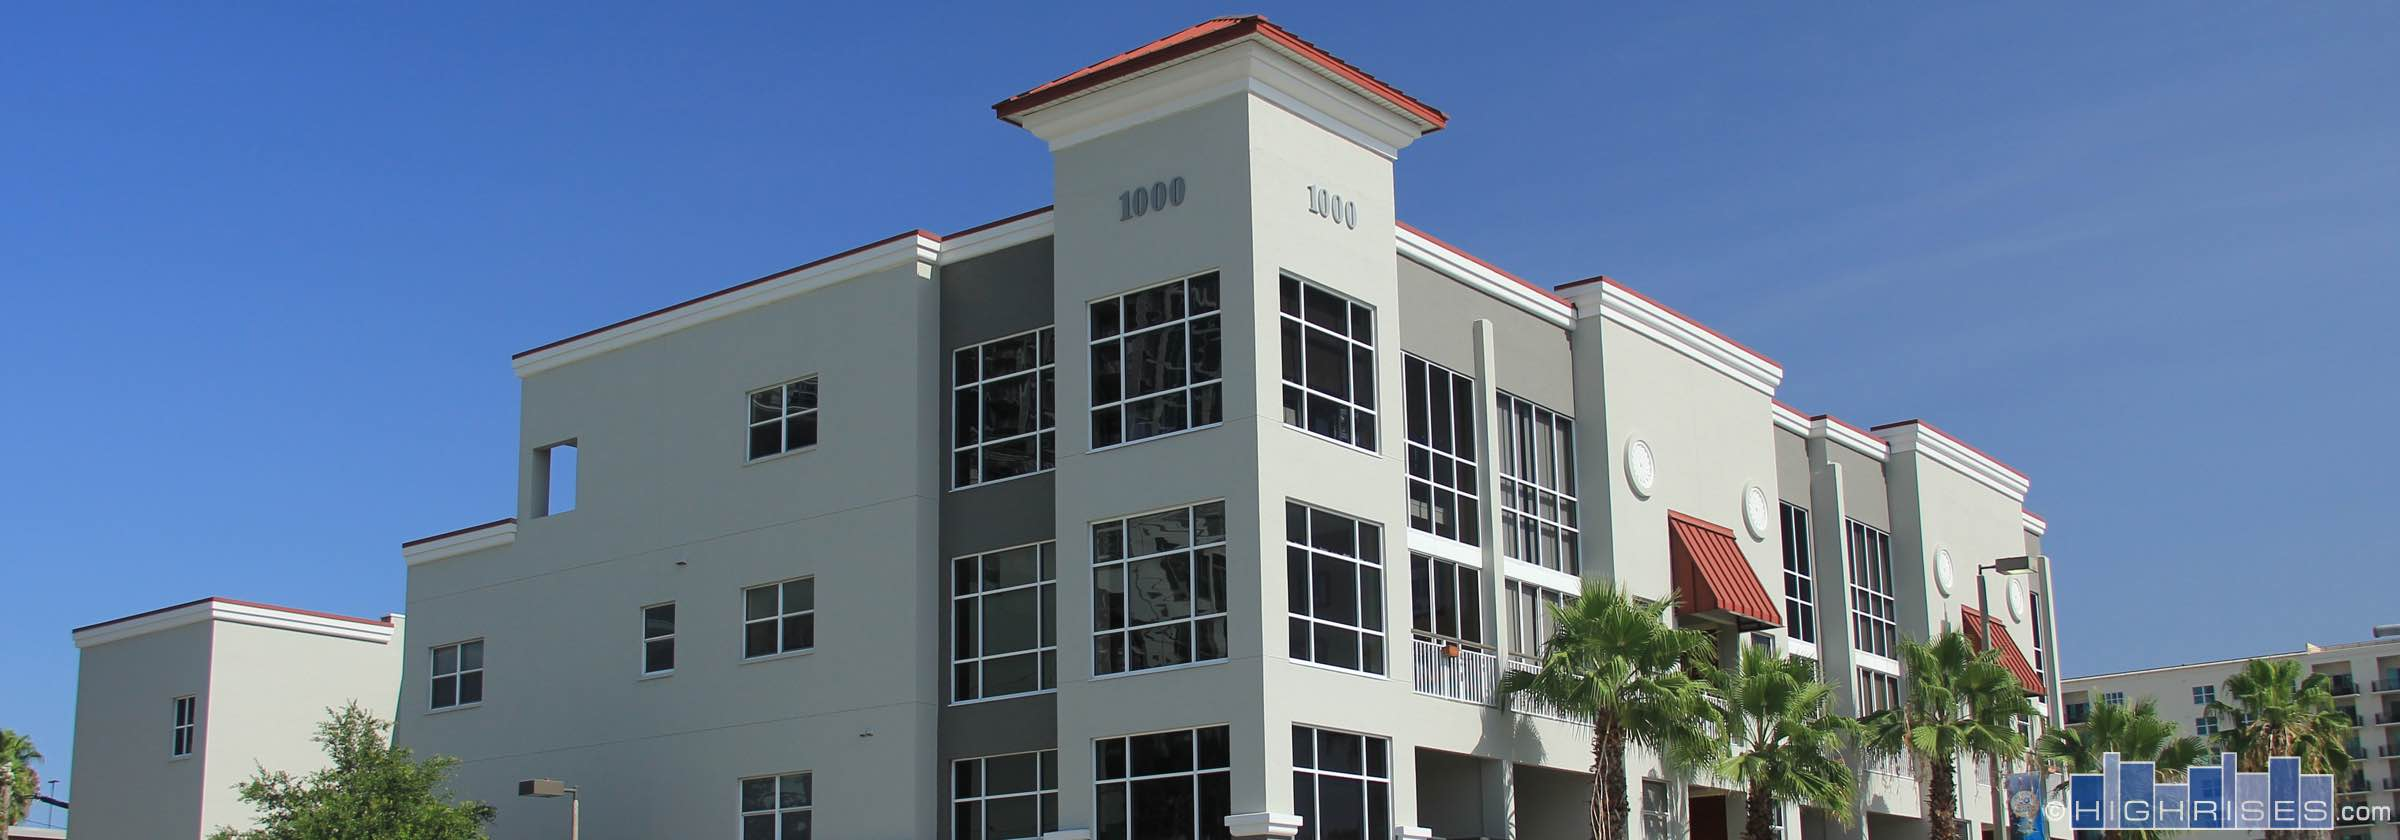 Channelside Lofts In Tampa Fl 1000 Channelside Blvd